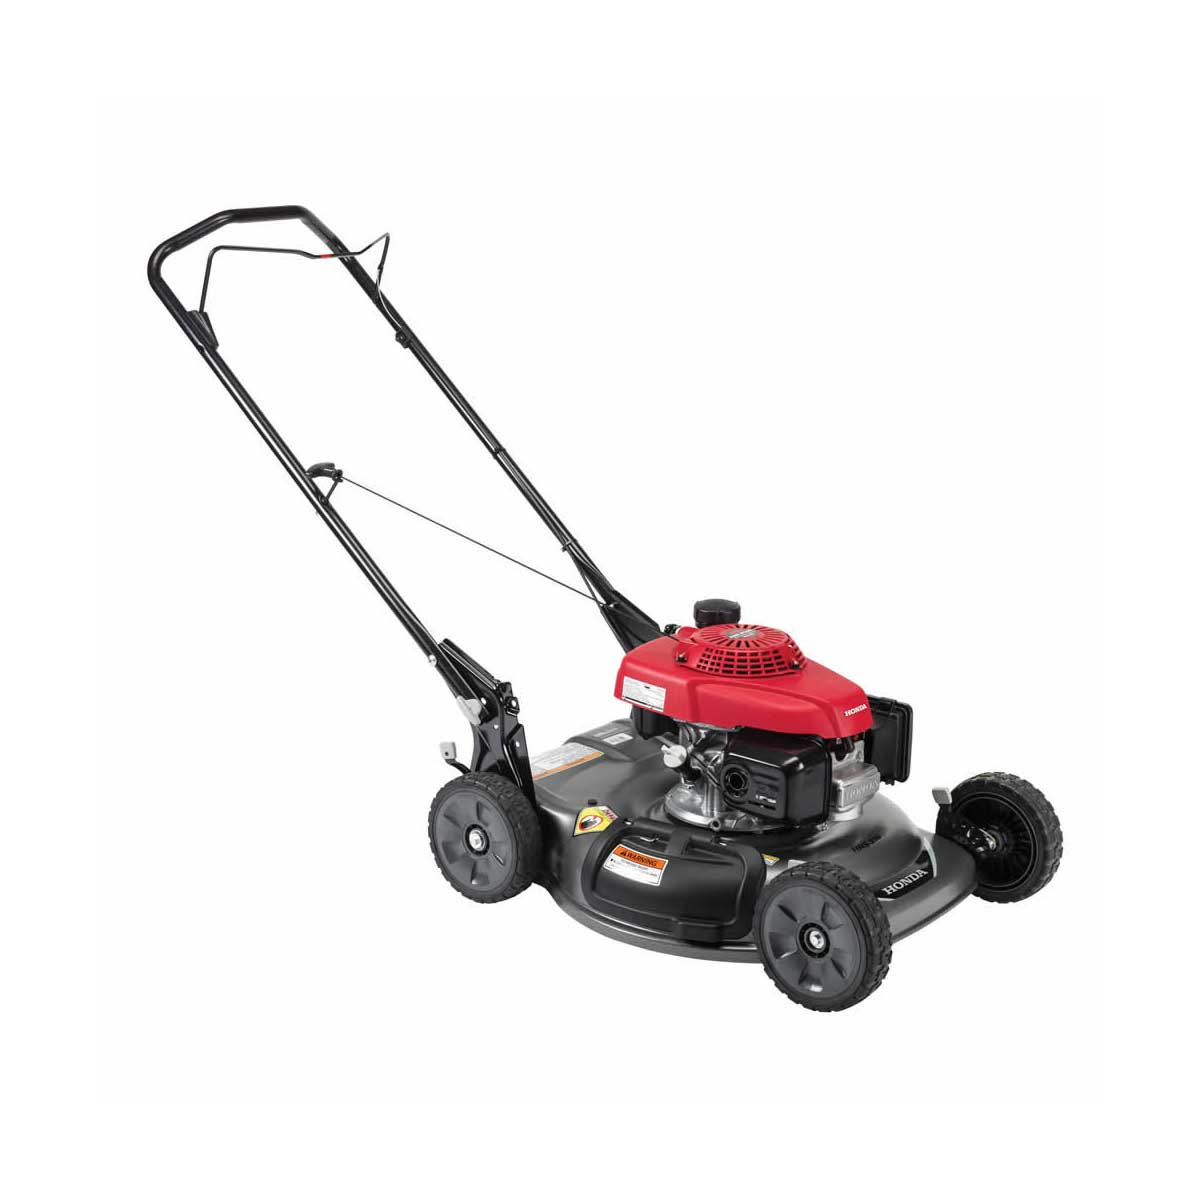 Lynnwood Honda - Power lawn mower equipment - Seattle